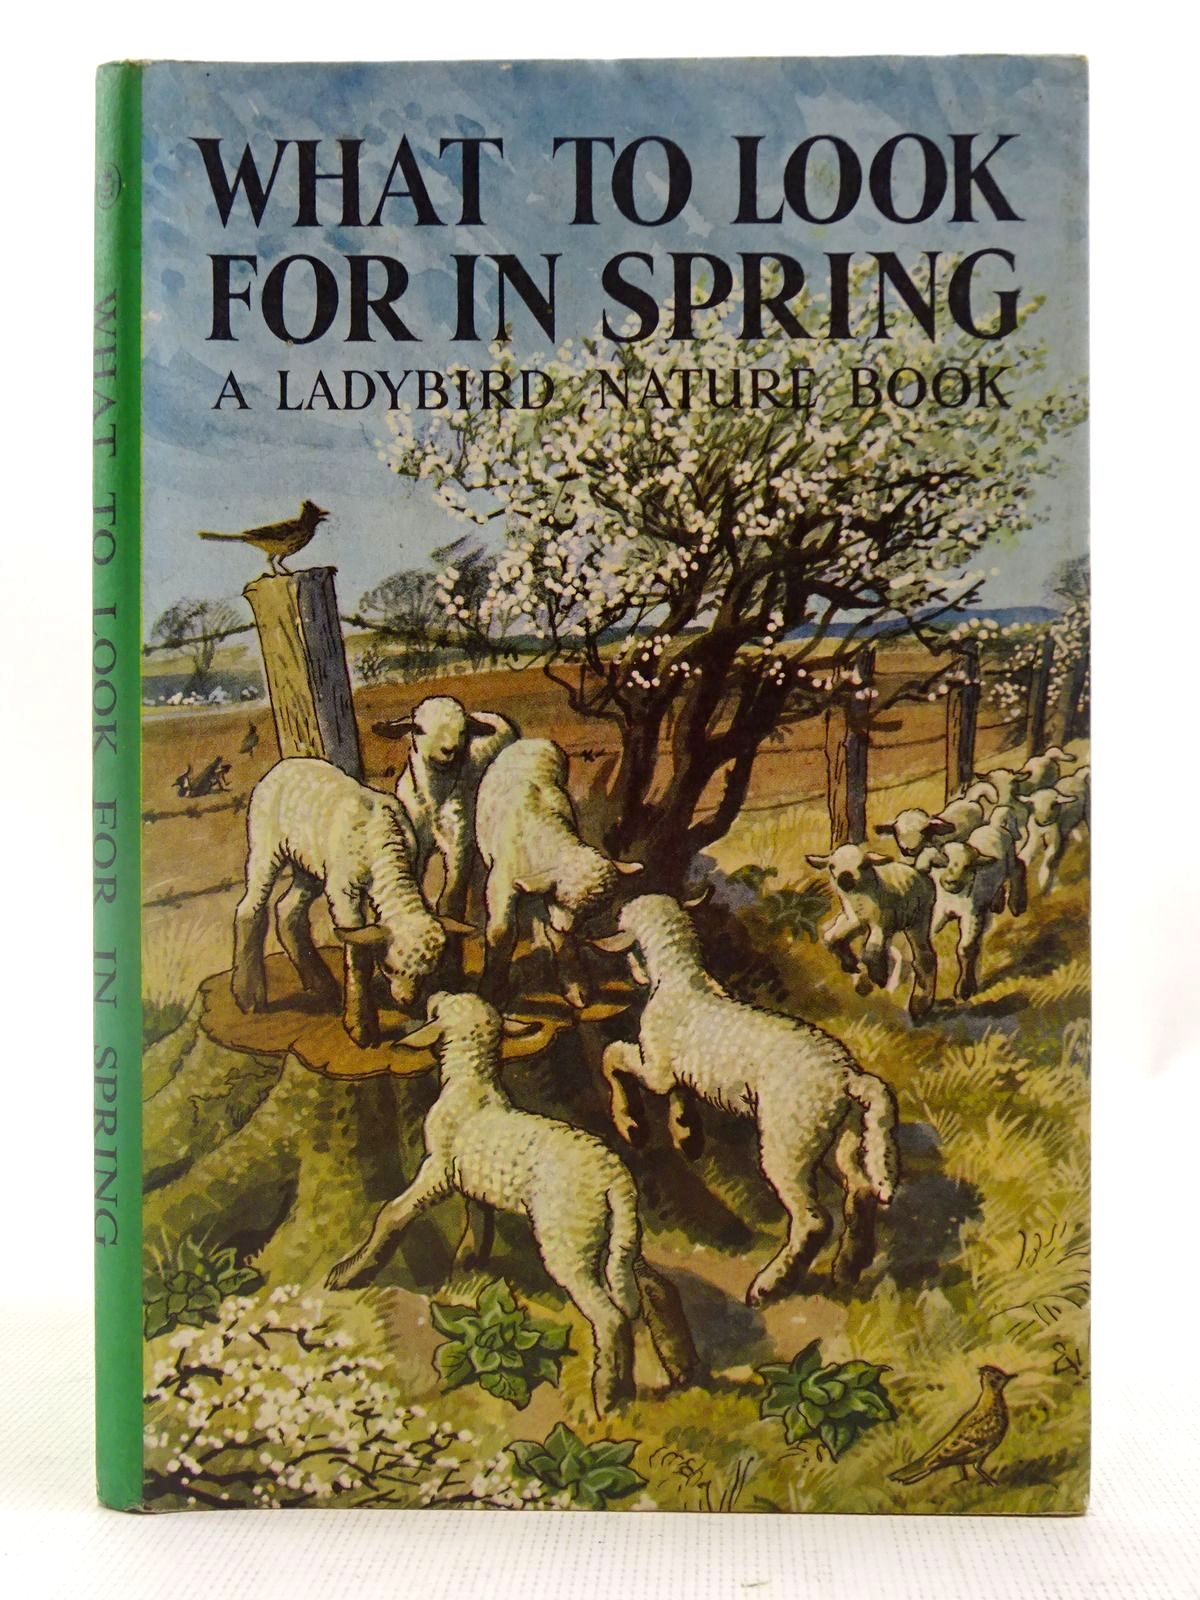 Photo of WHAT TO LOOK FOR IN SPRING written by Watson, E.L. Grant illustrated by Tunnicliffe, C.F. published by Wills & Hepworth Ltd. (STOCK CODE: 2127480)  for sale by Stella & Rose's Books